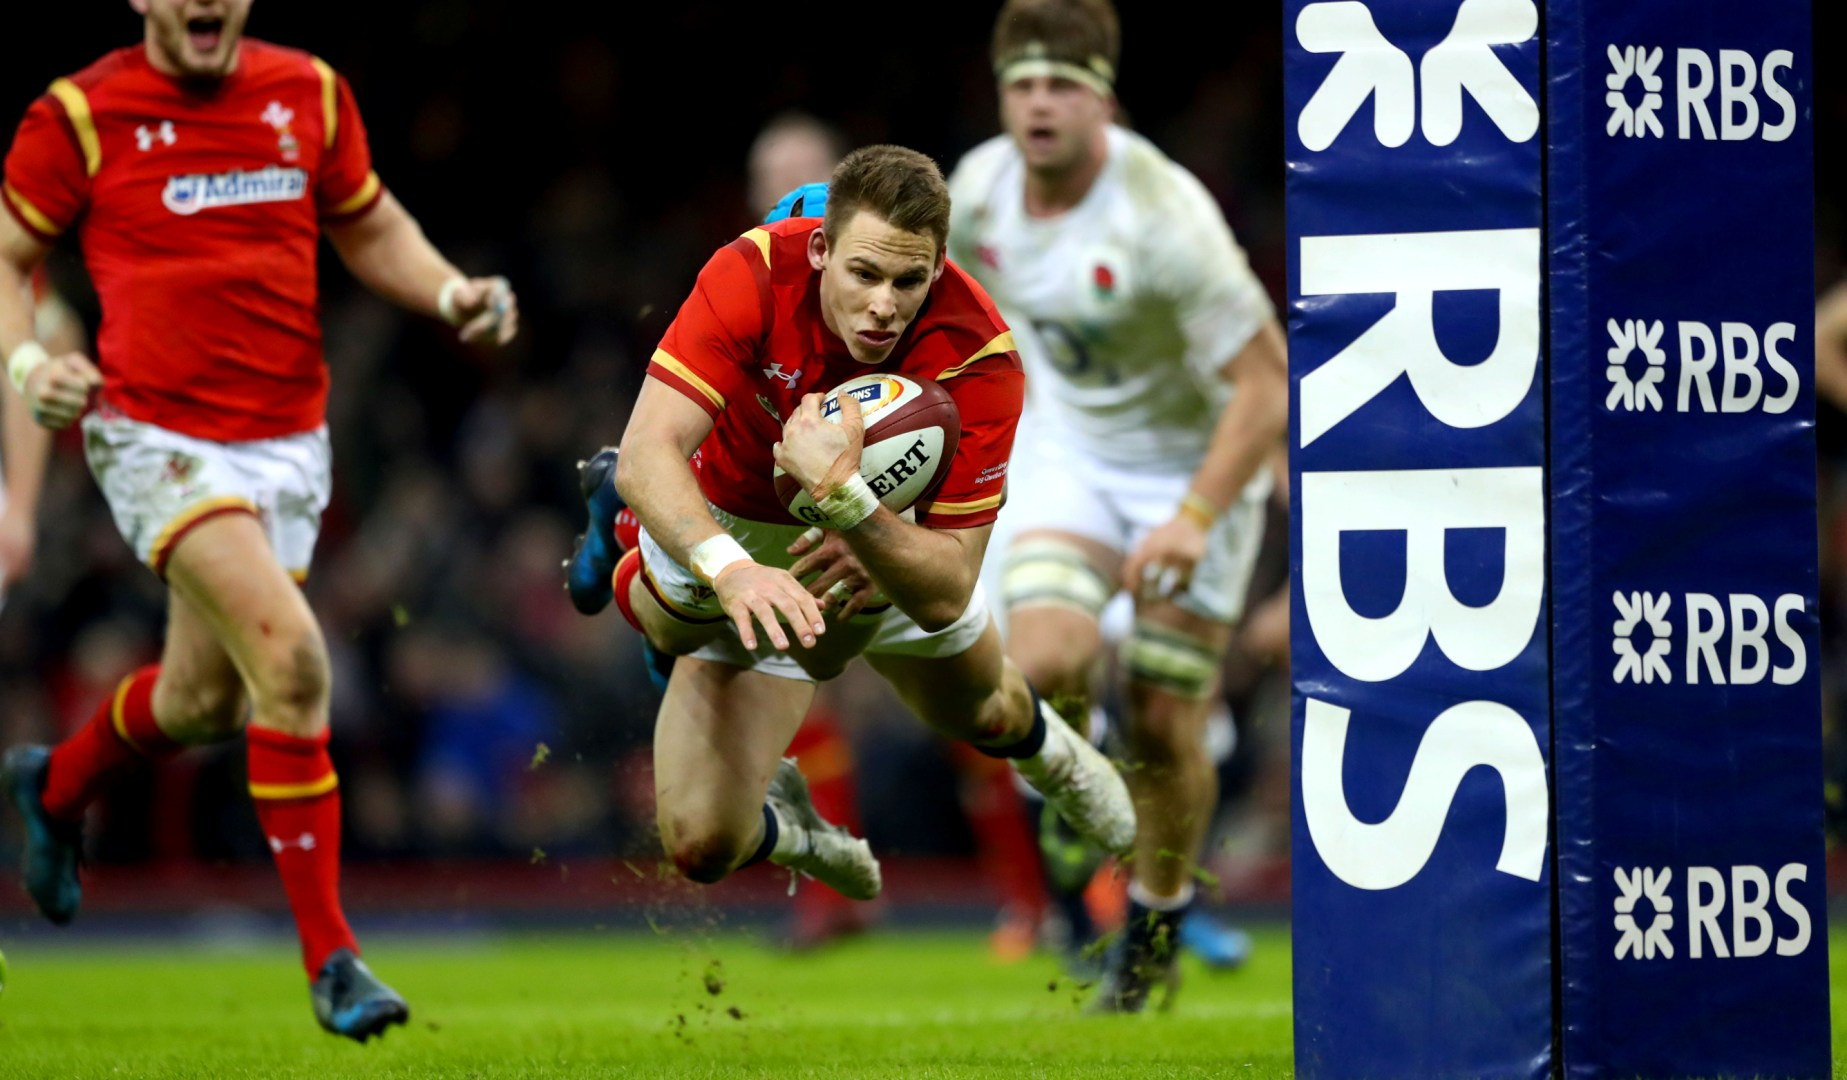 LionsWatch: Jones frustrated at Wales' late struggles